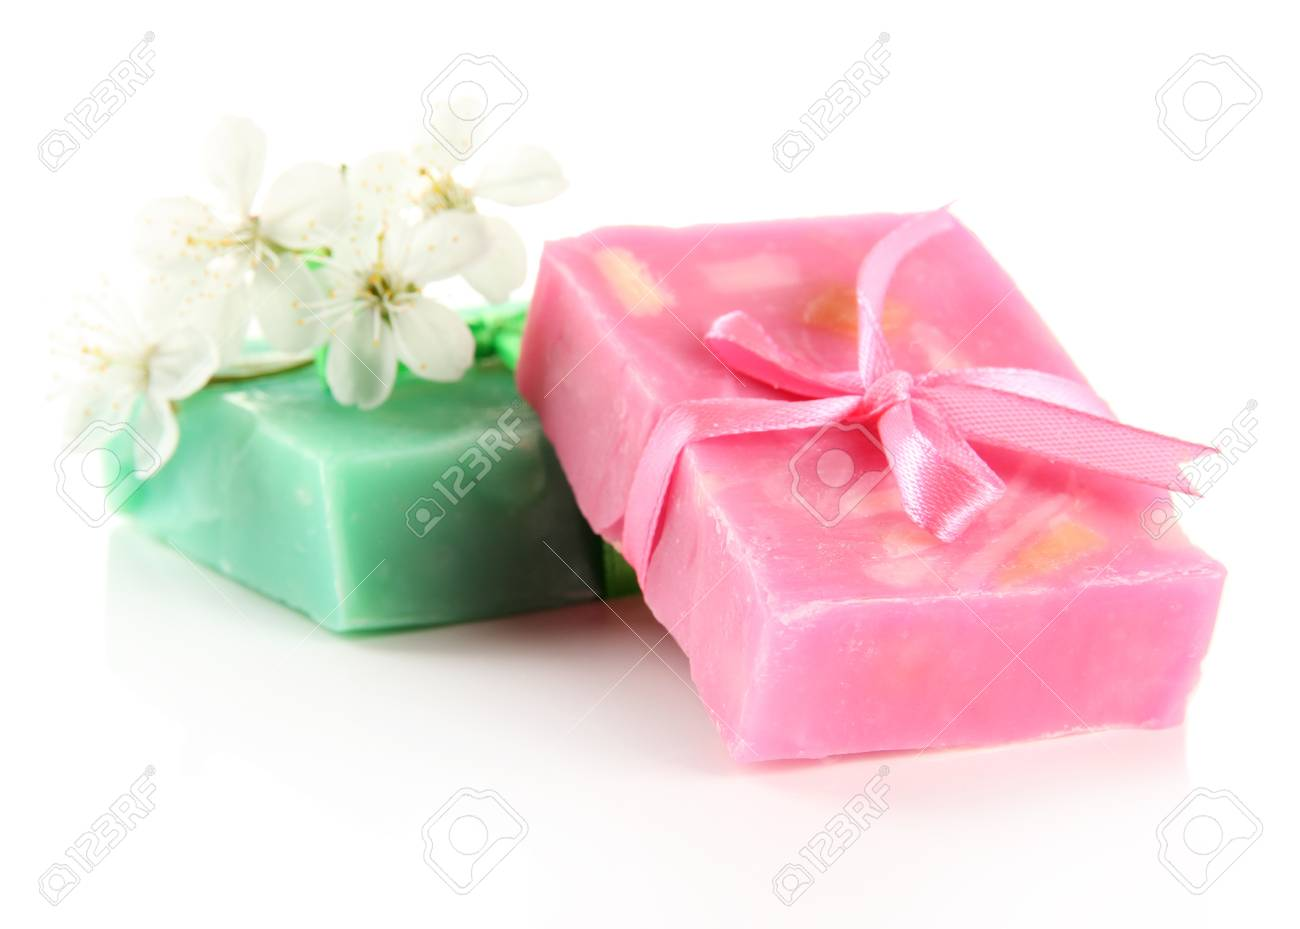 Natural Handmade Soap, Isolated On White Stock Photo, Picture And ...